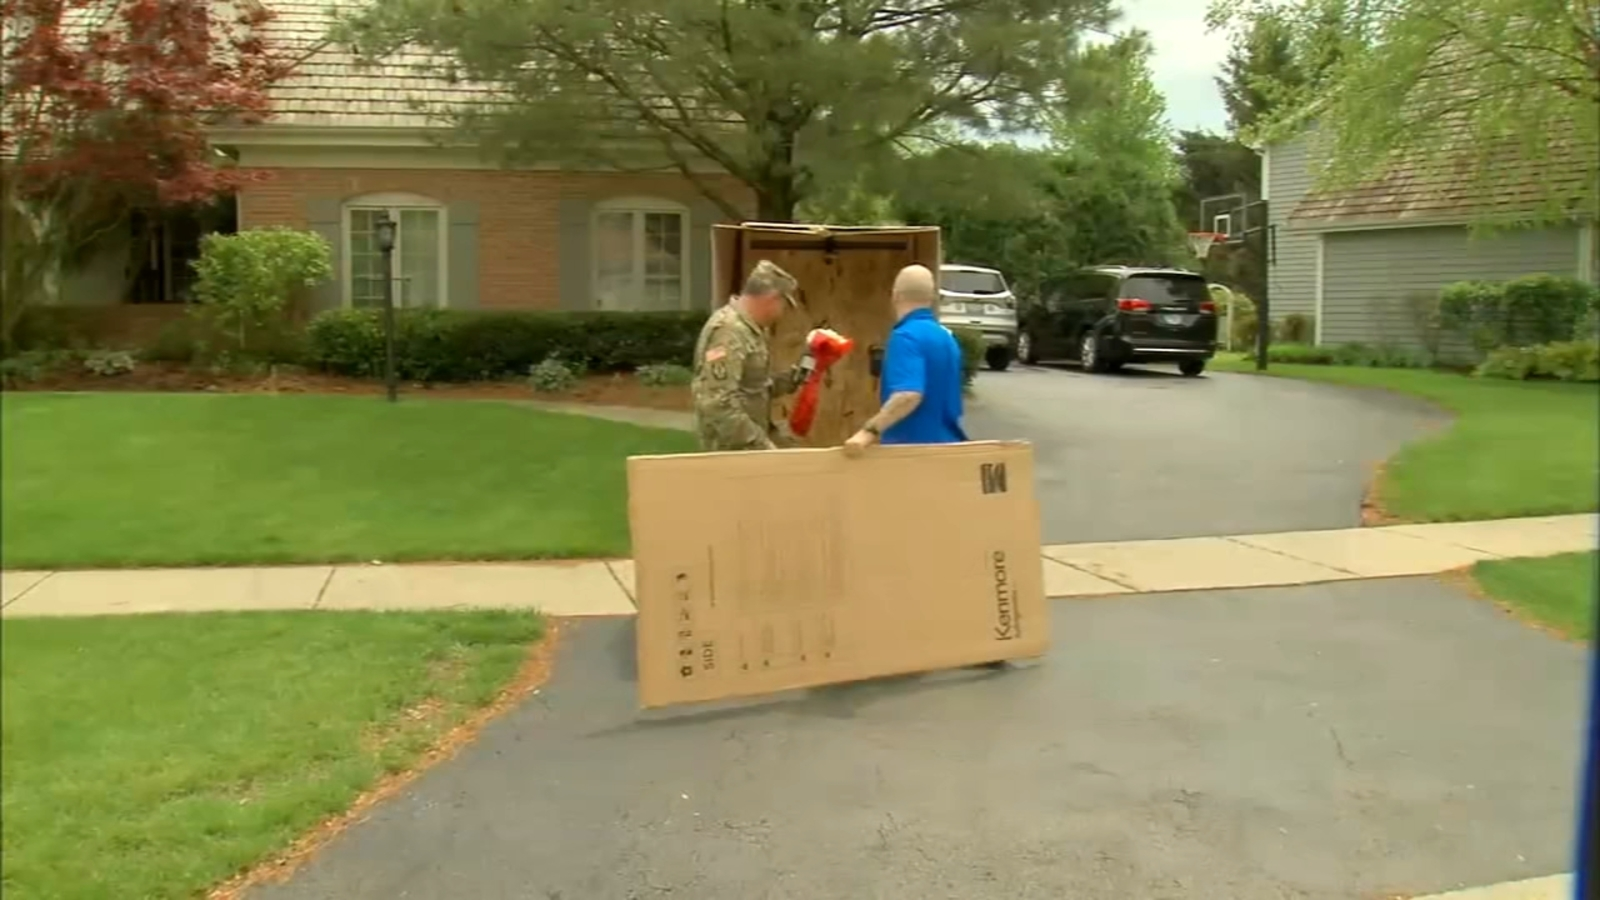 St. Charles military dad disguised as grill comes home early, surprises wife, kids